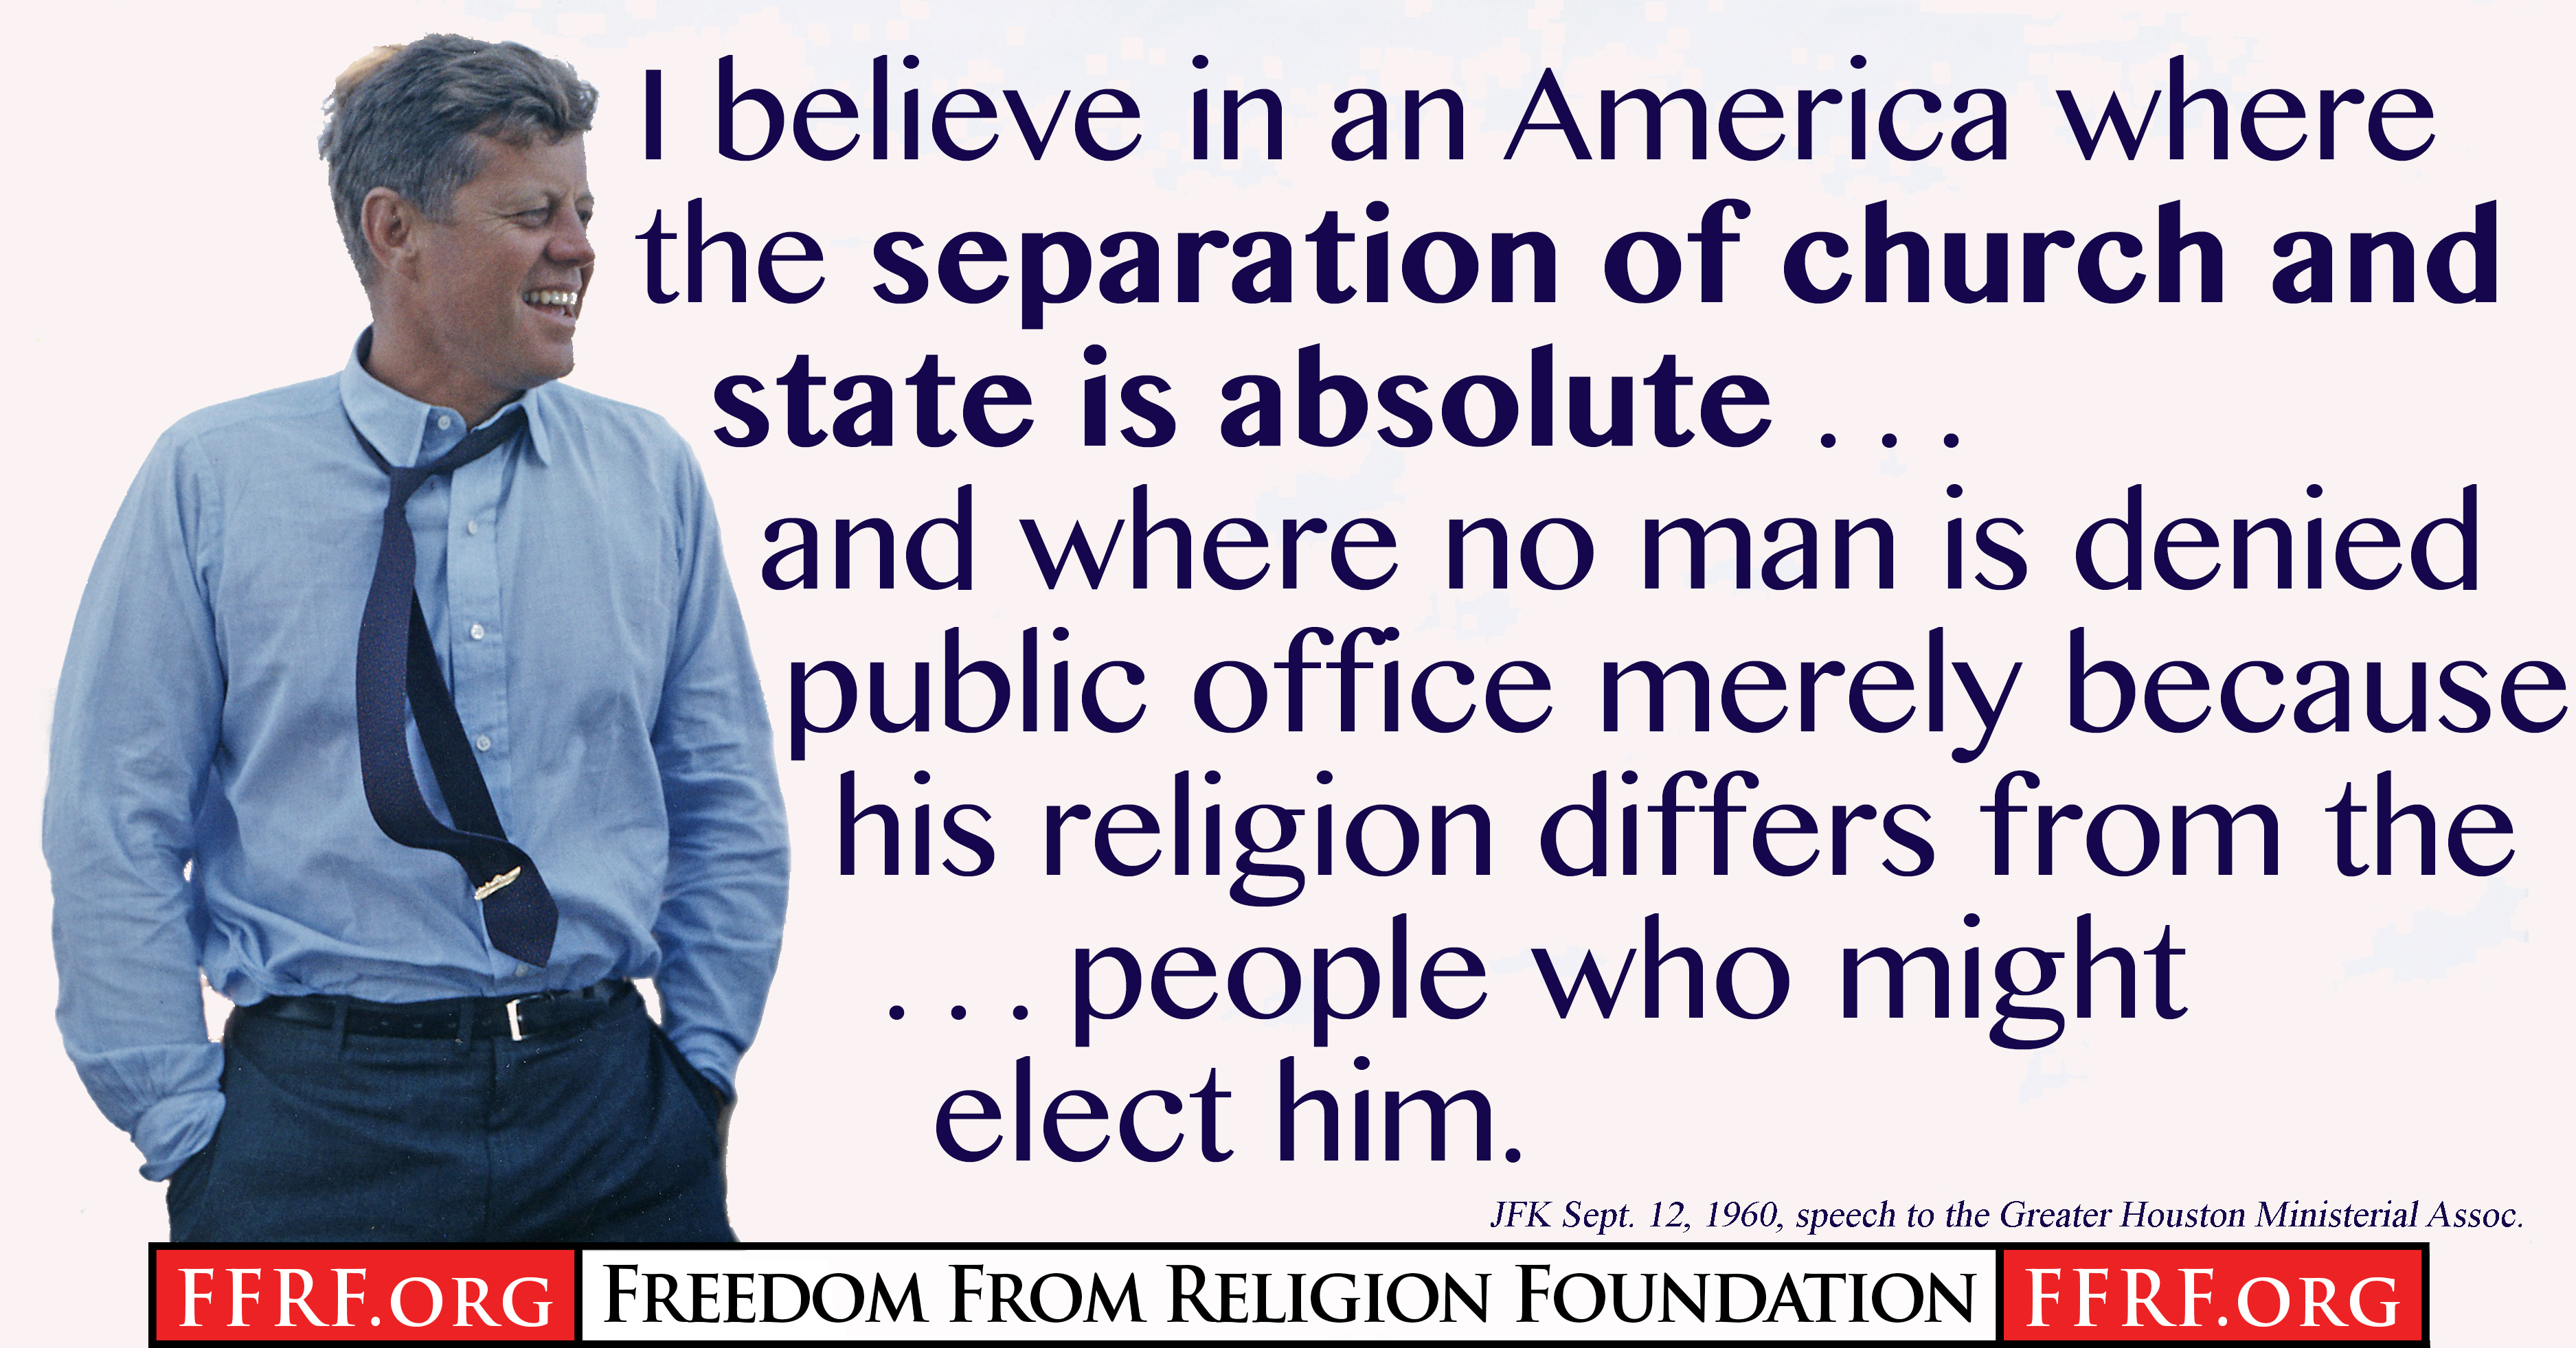 An analysis of separation of church and state